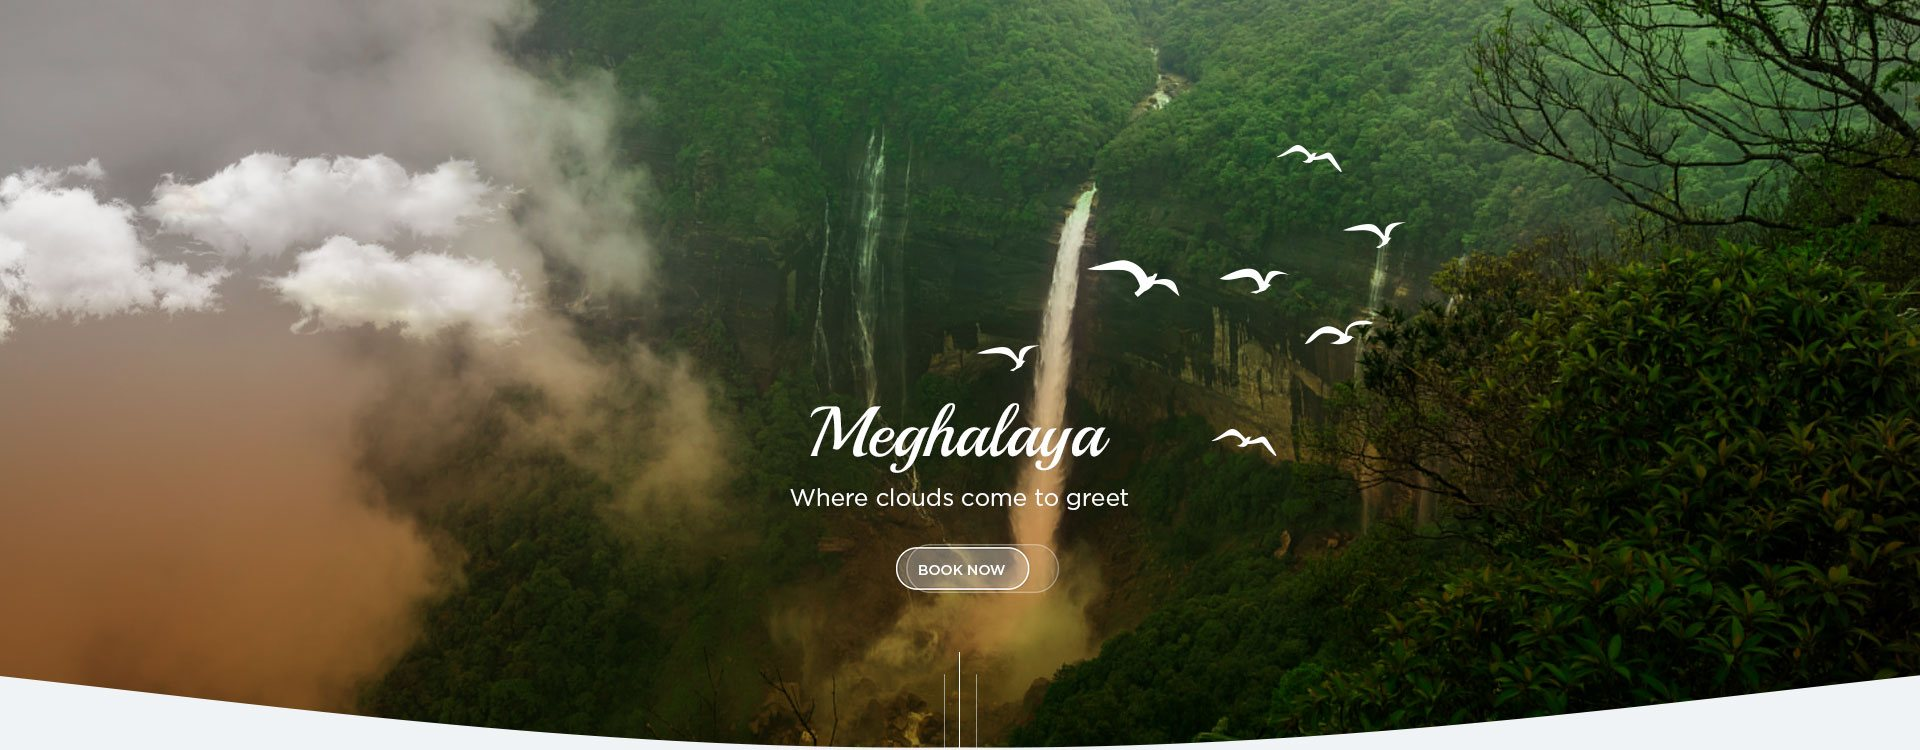 Meghalaya Tours and travel - Eastern Meadows Tour